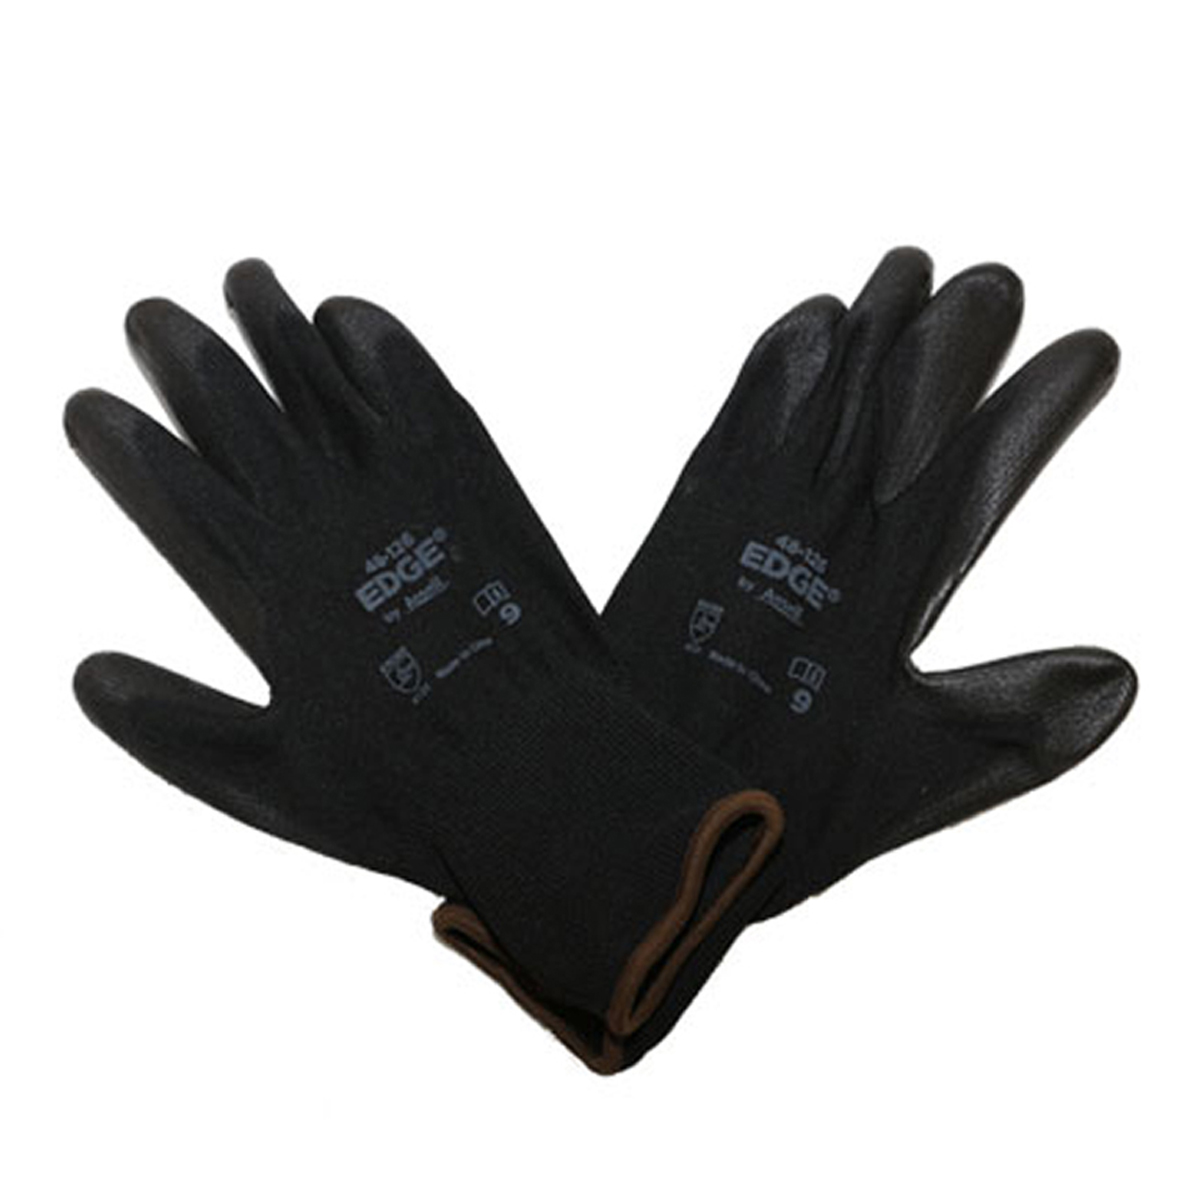 Ansell EDGE® 48-126 PU Coated Work Gloves – Black Color